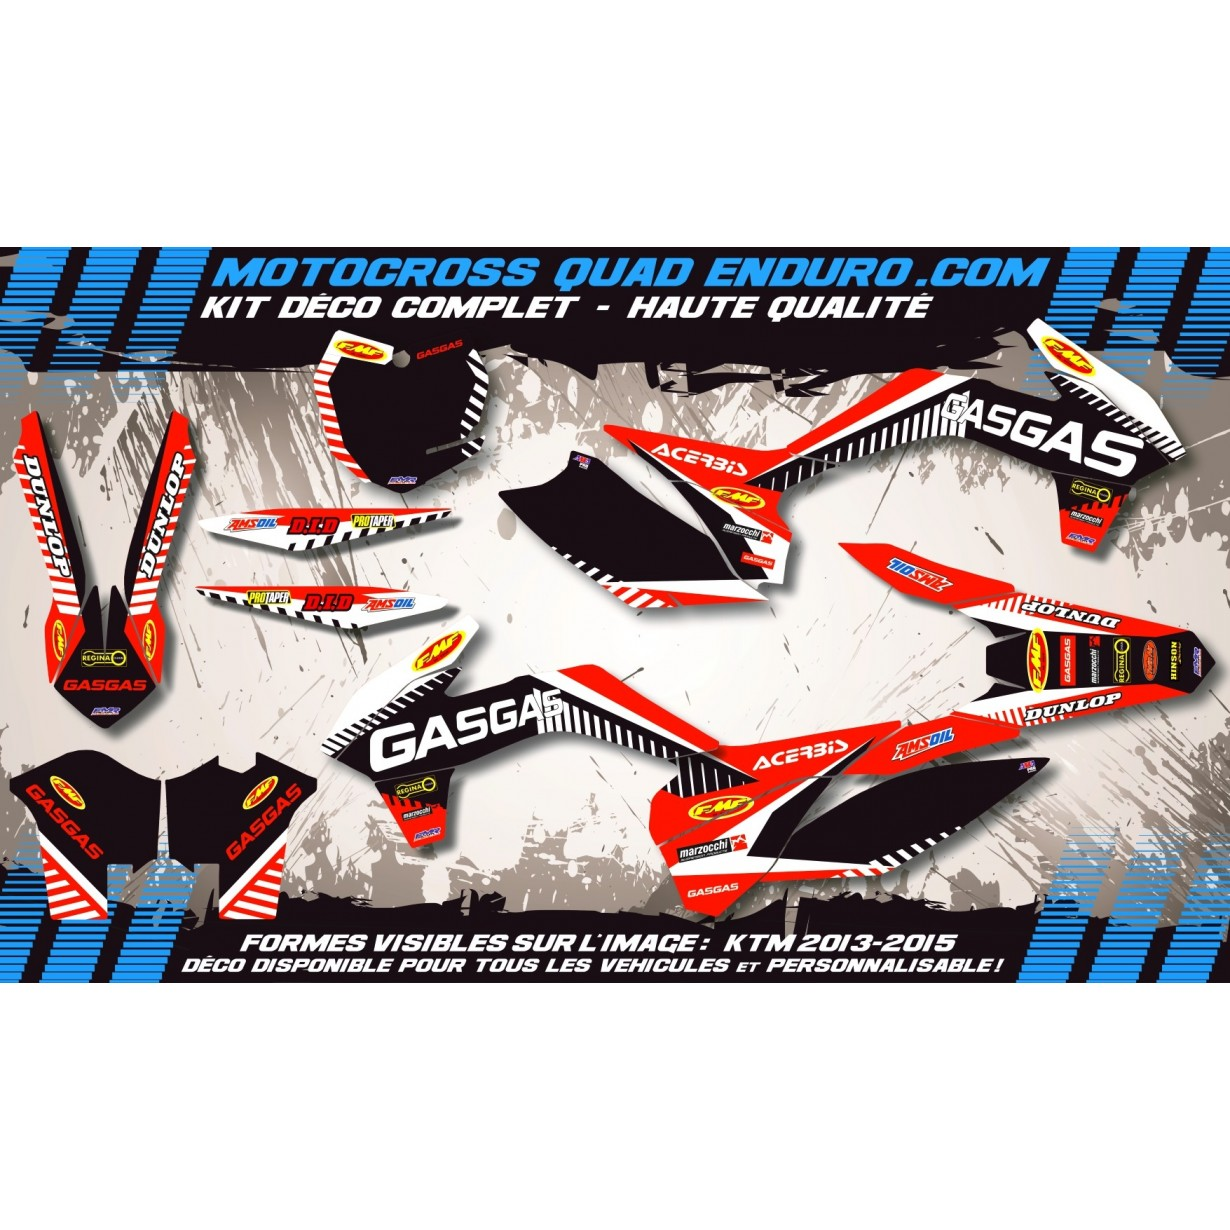 KIT DÉCO Perso EC 2010 GASGAS Racing MA12G